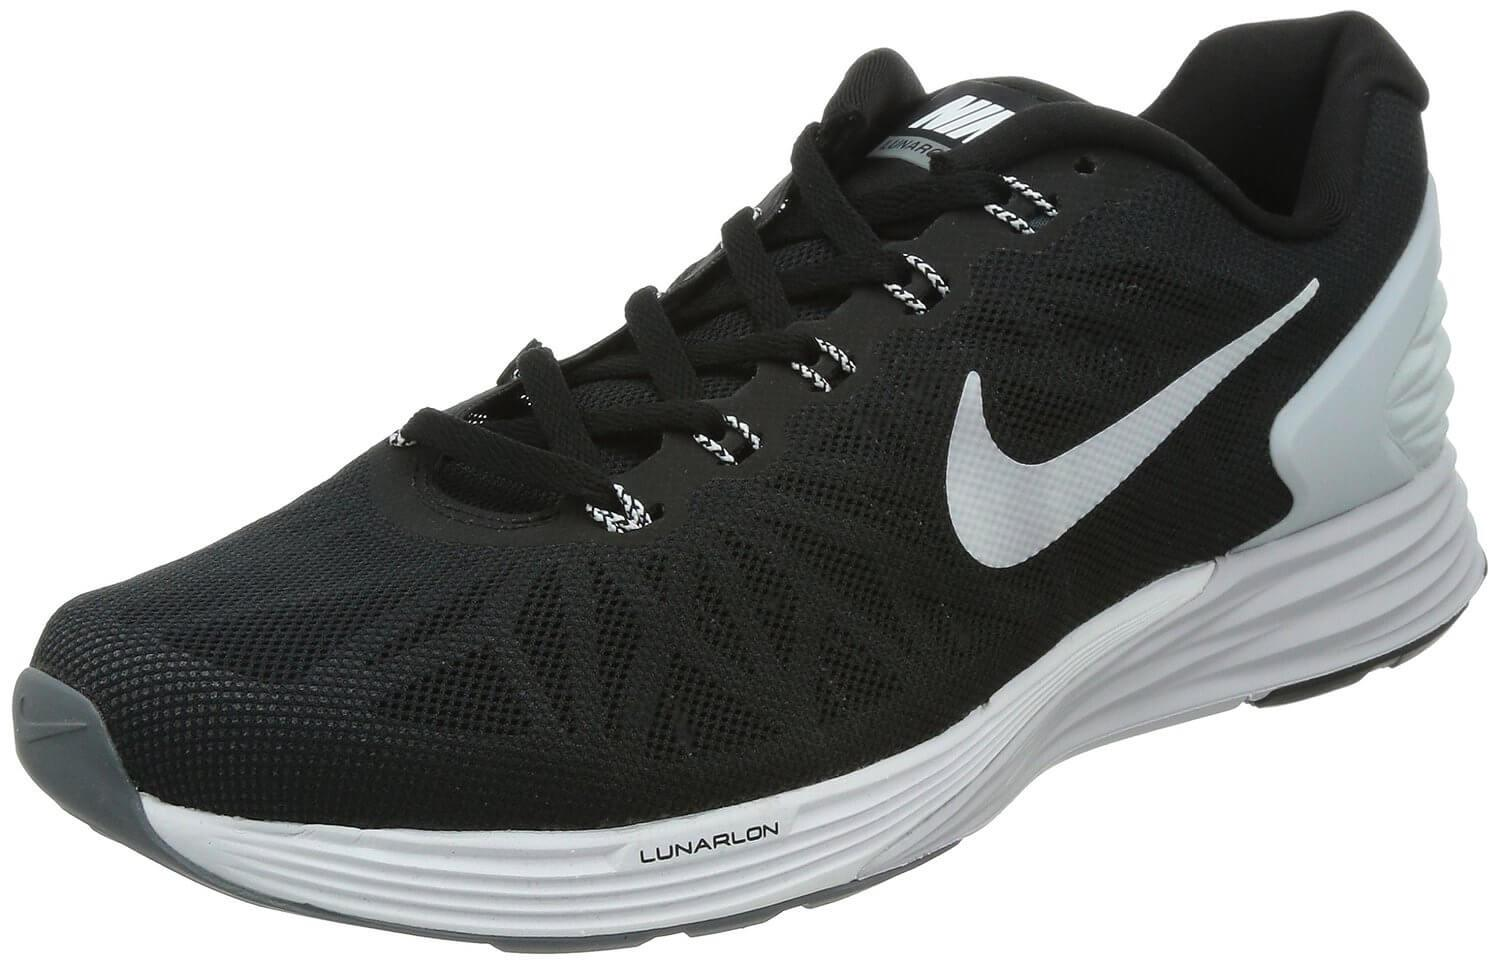 the Nike LunarGlide 6 is a great everyday running shoe, especially for runners with overpronation issues